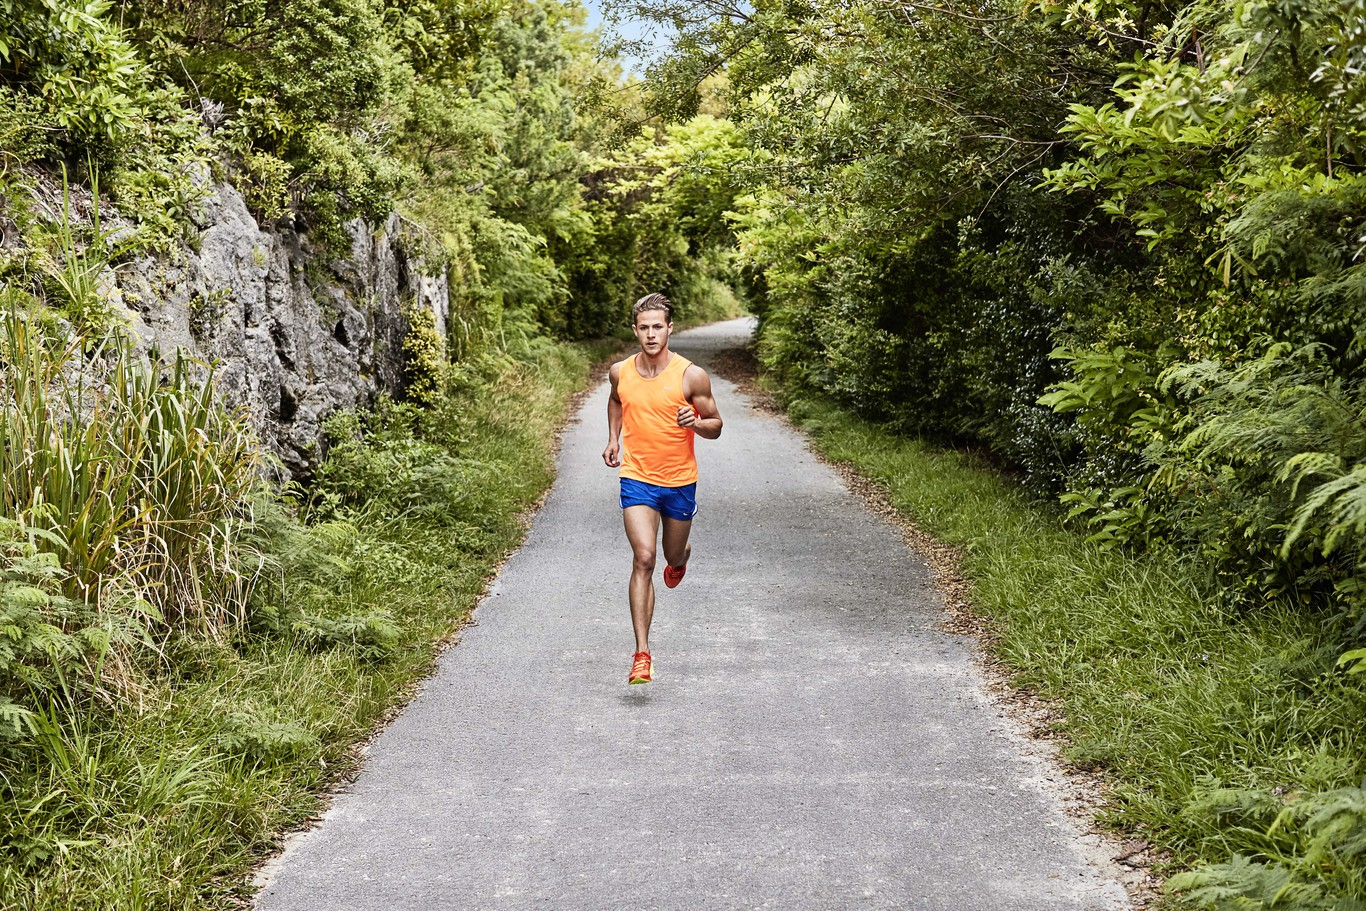 The Galloway method Running-walking-running to finish a marathon (or even improve your brand)